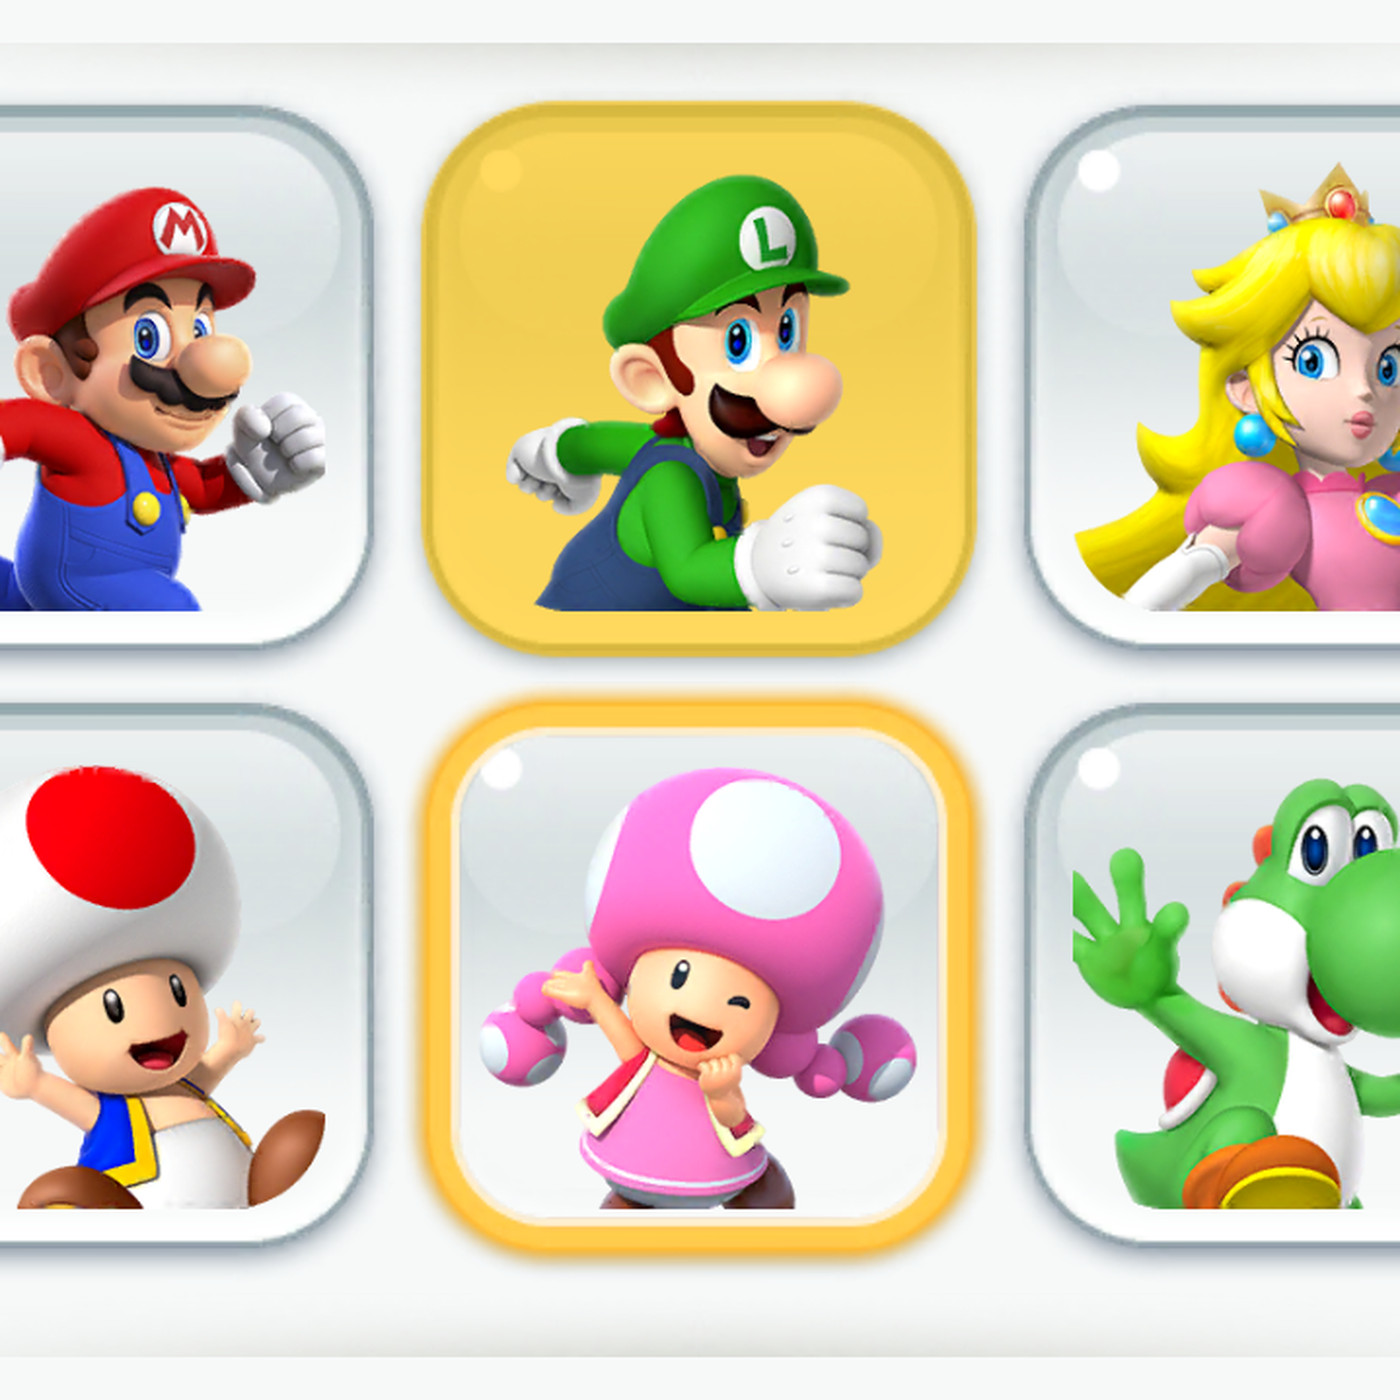 How To Unlock All Playable Characters In Super Mario Run Polygon